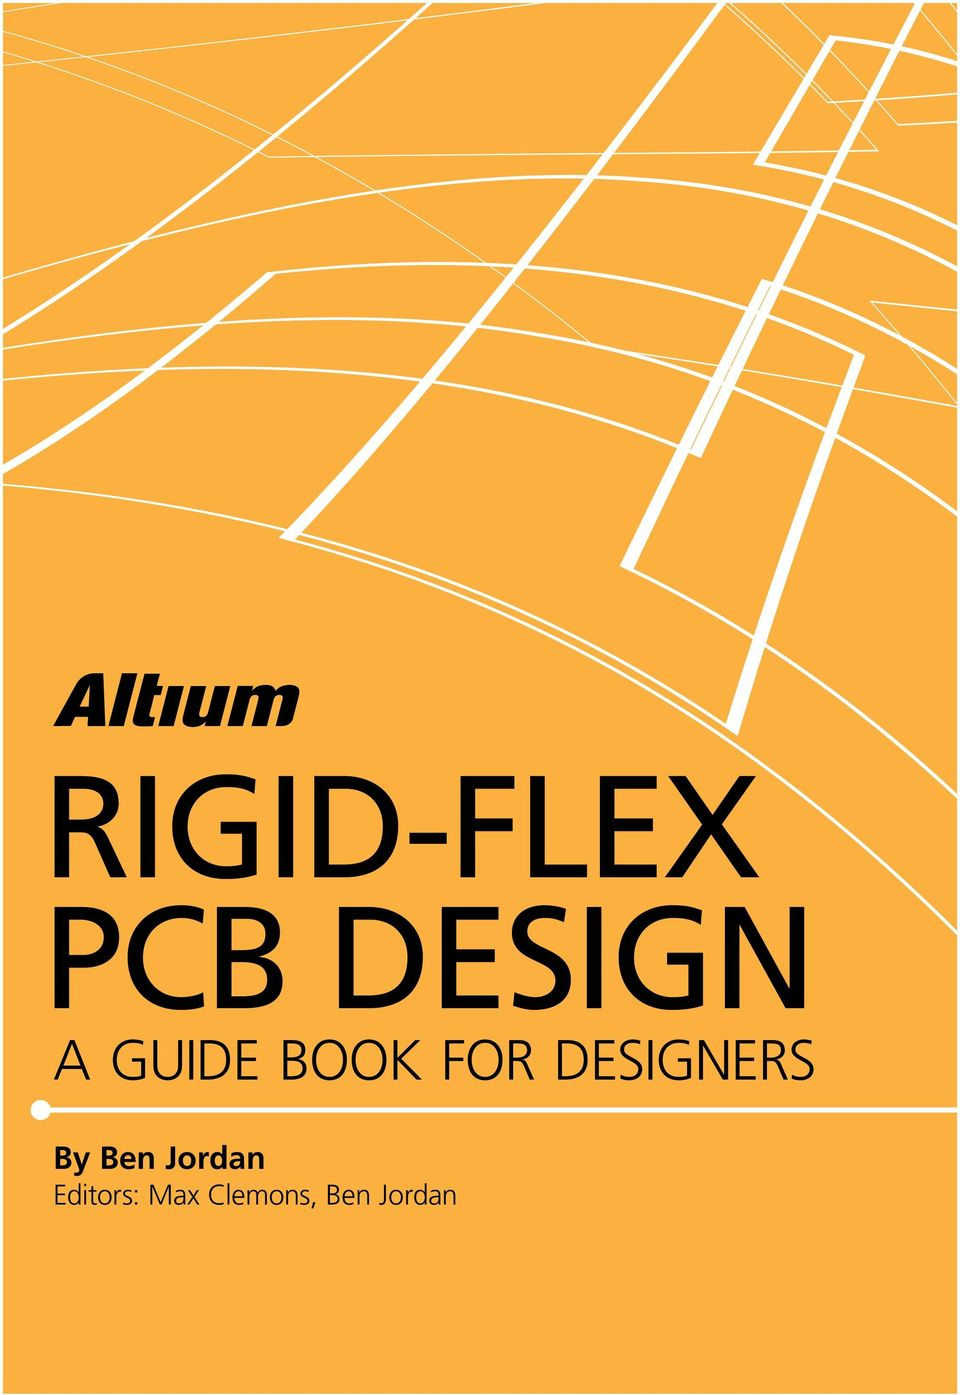 Rigid Flex Pcb Design A Guide Book For Designers By Ben Jordan Buy Multilayer Circuit Board Pcbpcb With Impedance Controlpcb